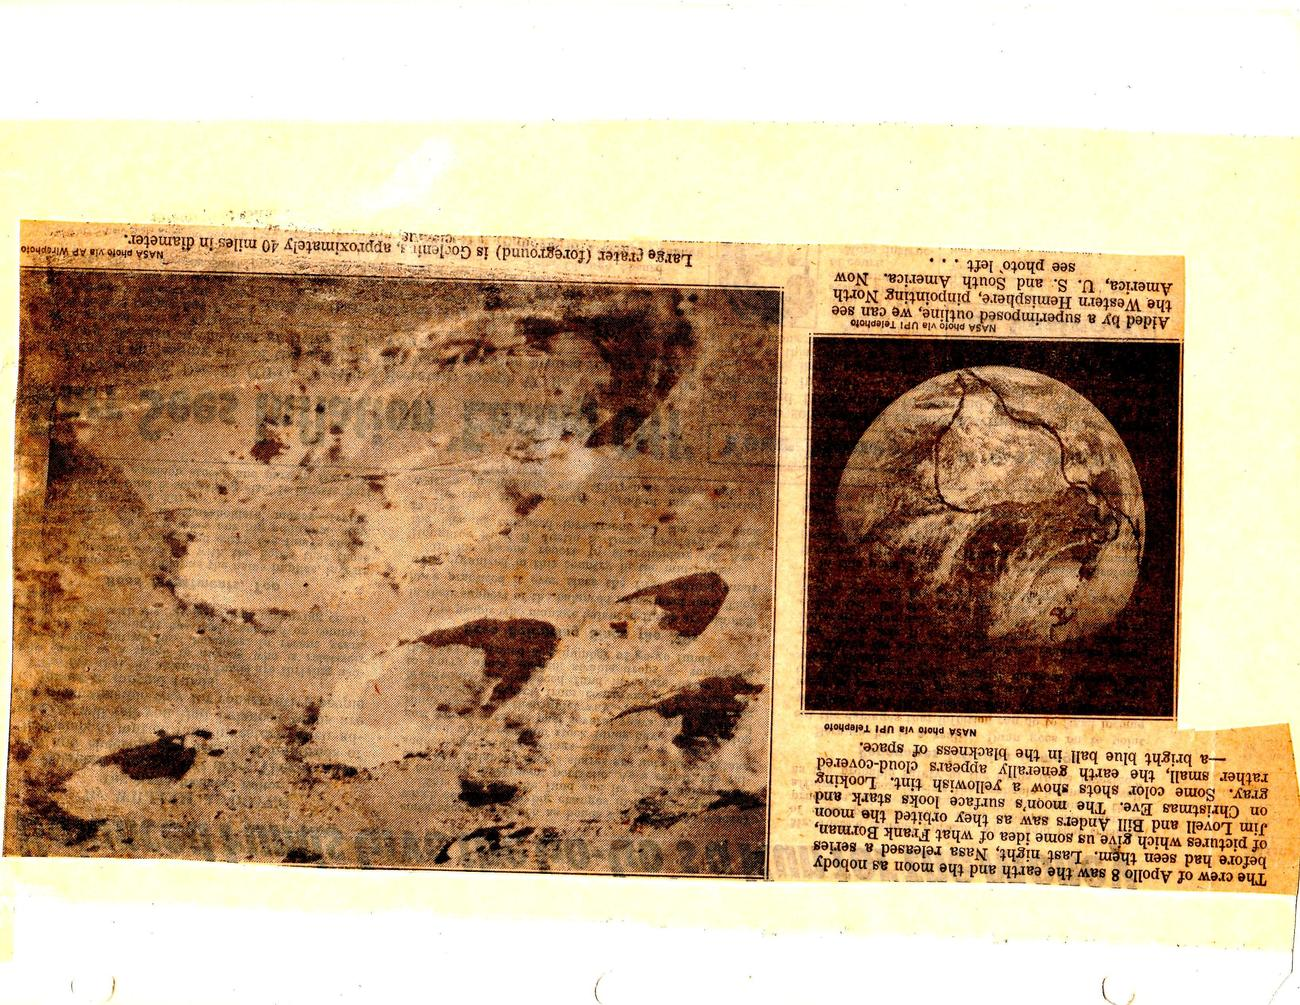 Apollo 8 - News clippings and Photo's